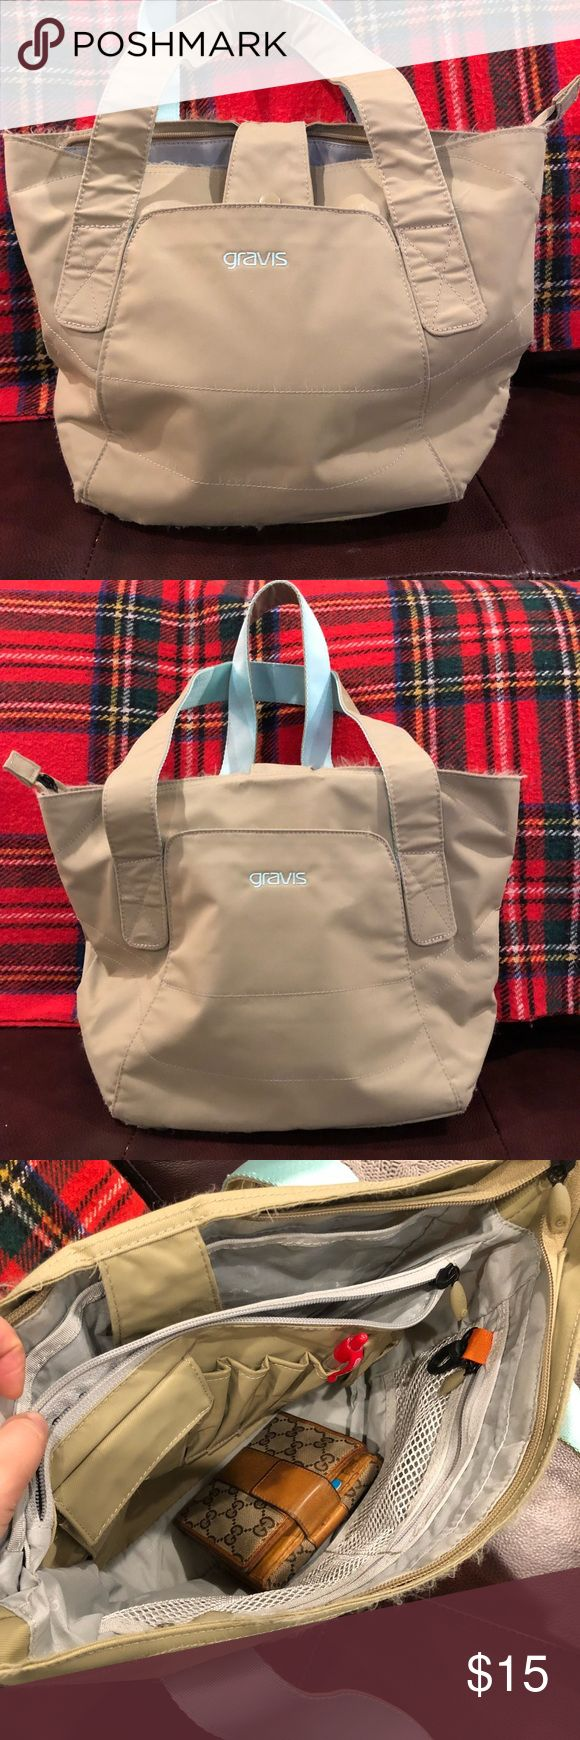 "Gravis tan bag with sea foam green accents Nylon shoulder bag. This bag is amazing! Pockets everywhere.  15"" x 11"" x 5.25"" 2 outside pockets, one clear divider pocket, large inside Velcro pocket, 2 mesh pockets, pen and phone holders.  A little beat up on the outside - the seams look frayed, but nothing is loose. I took a photo of the worst part. This is a tough bag!  The inside is in excellent shape. Interior is like new. GRAVIS Bags Shoulder Bags"